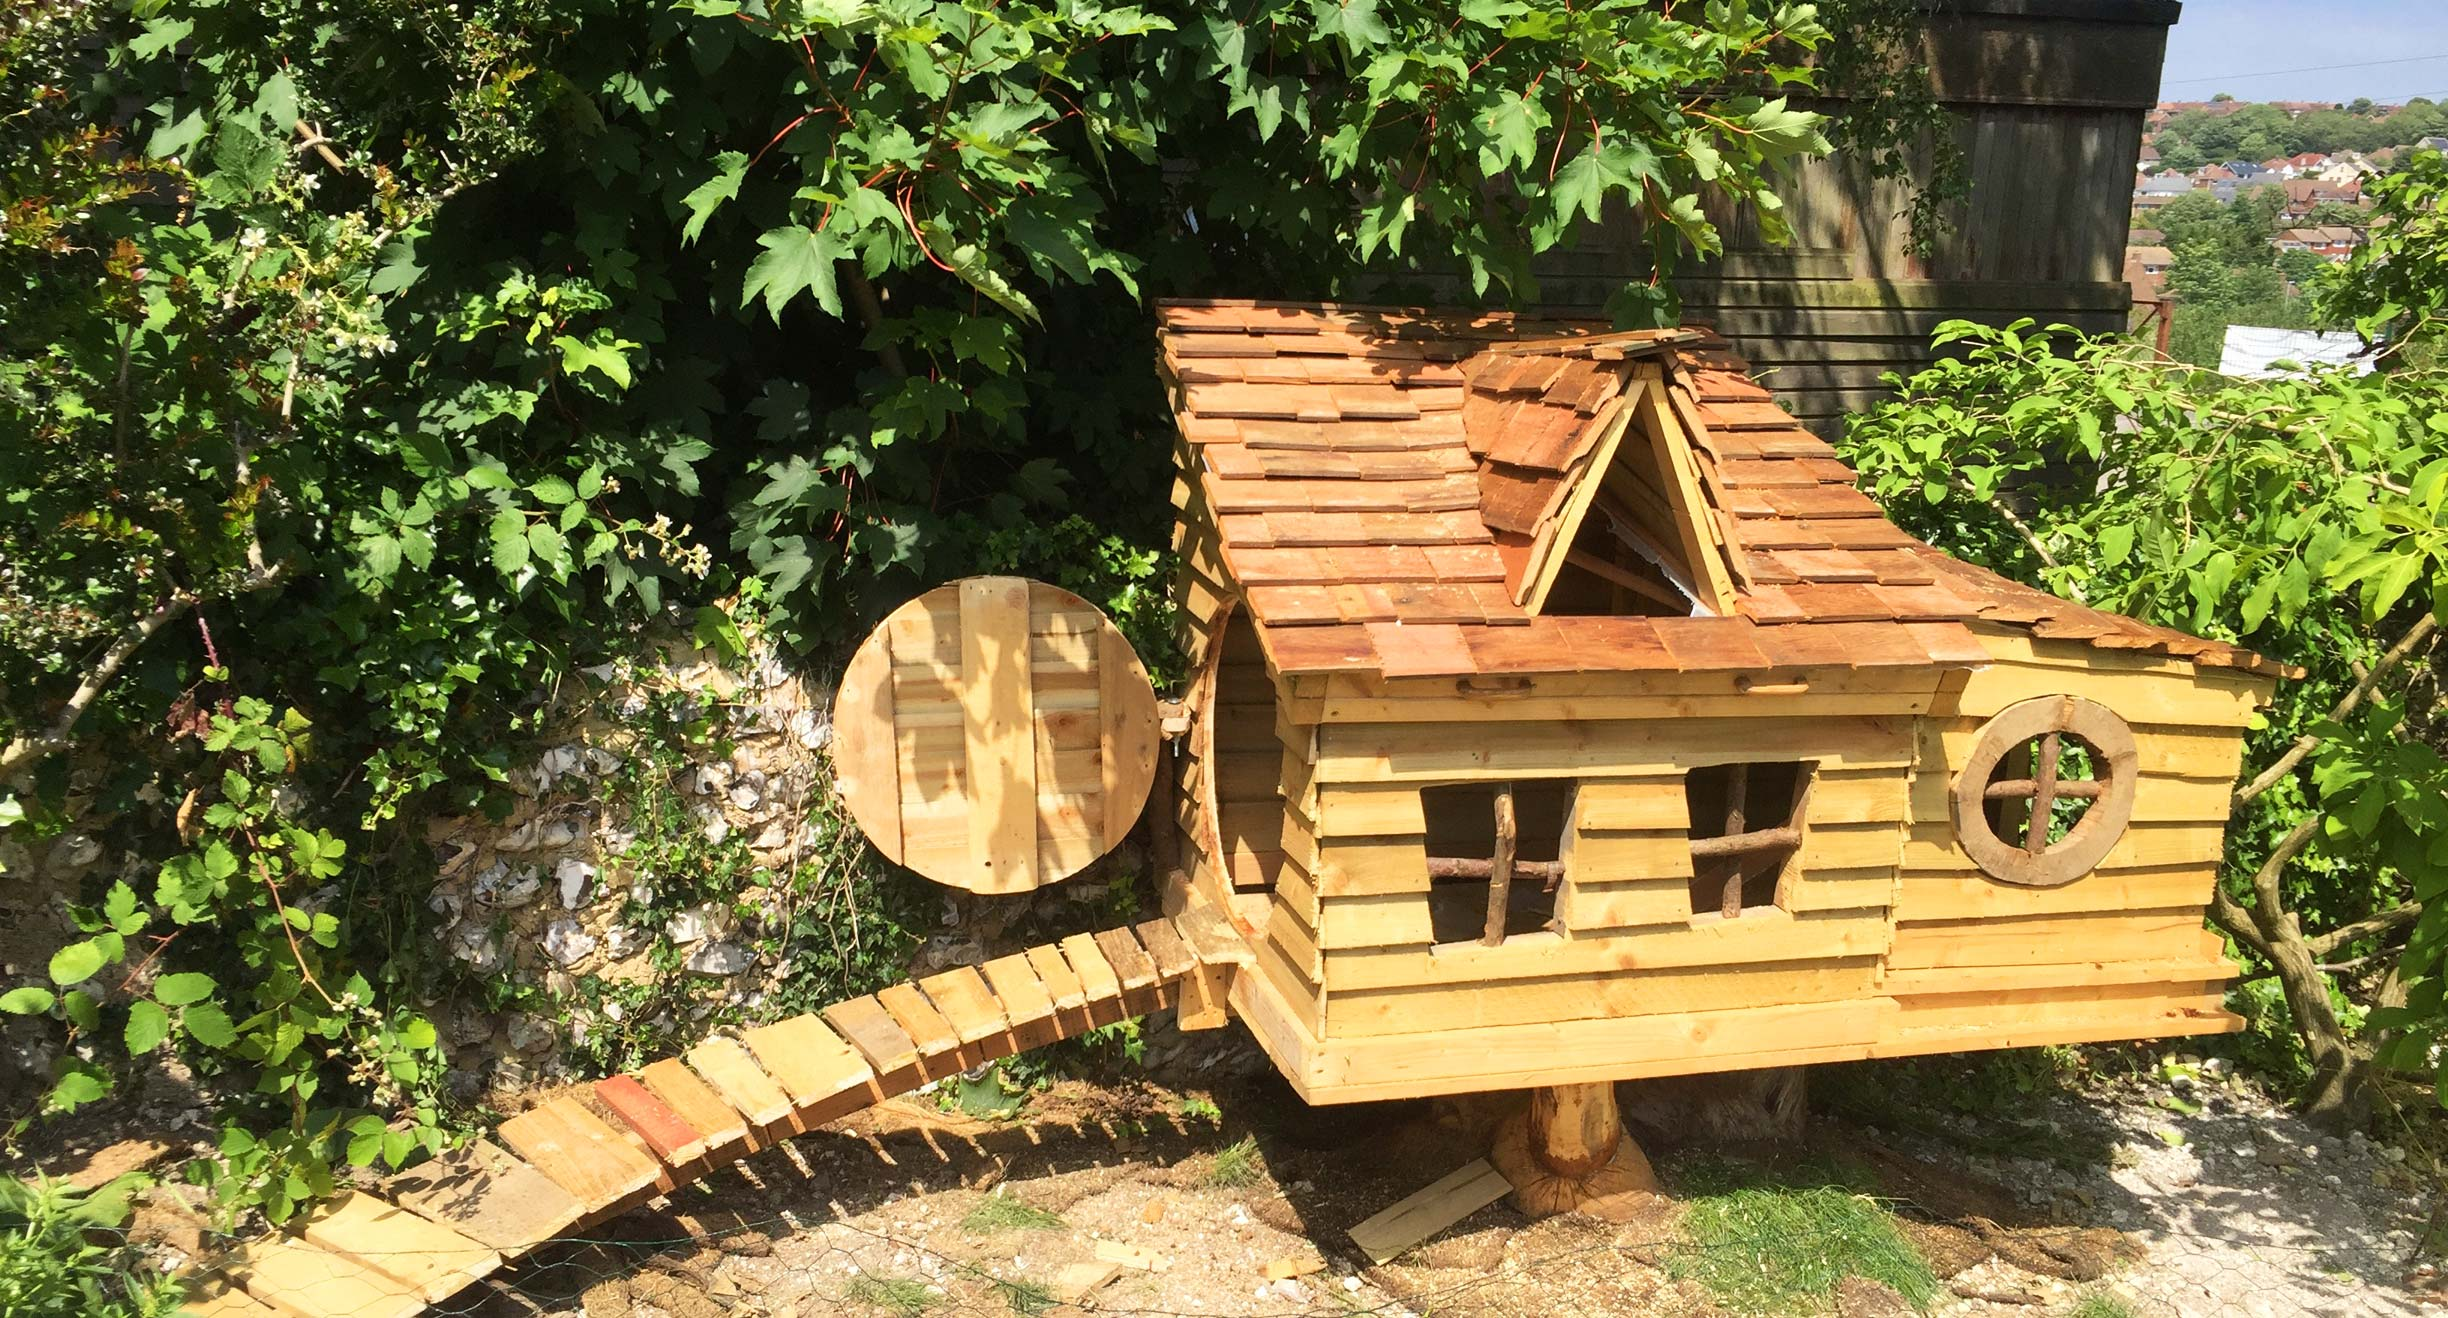 Gardening services in brighton - chicken house and chicken run